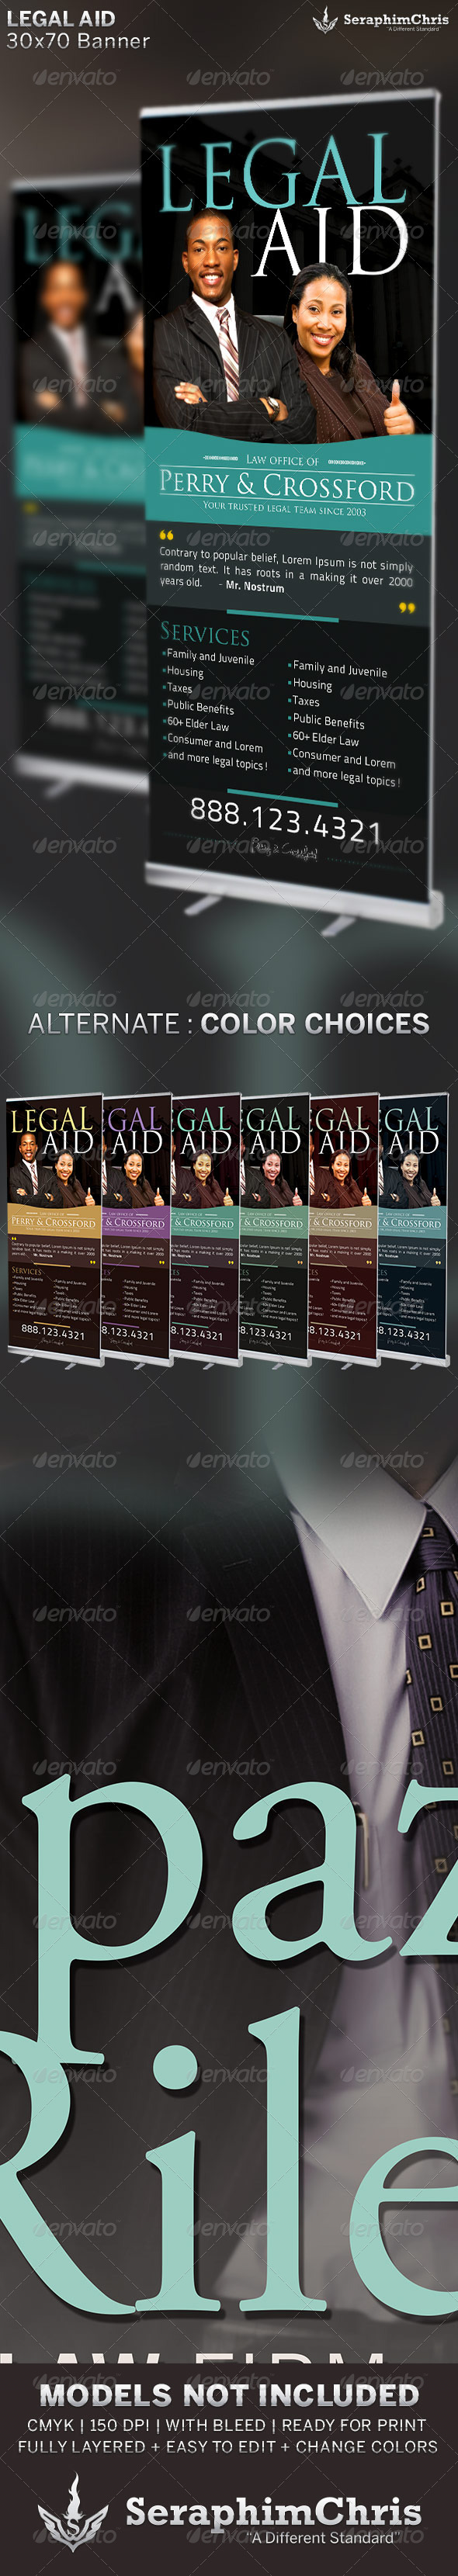 GraphicRiver Legal Aid Banner Template 6528840